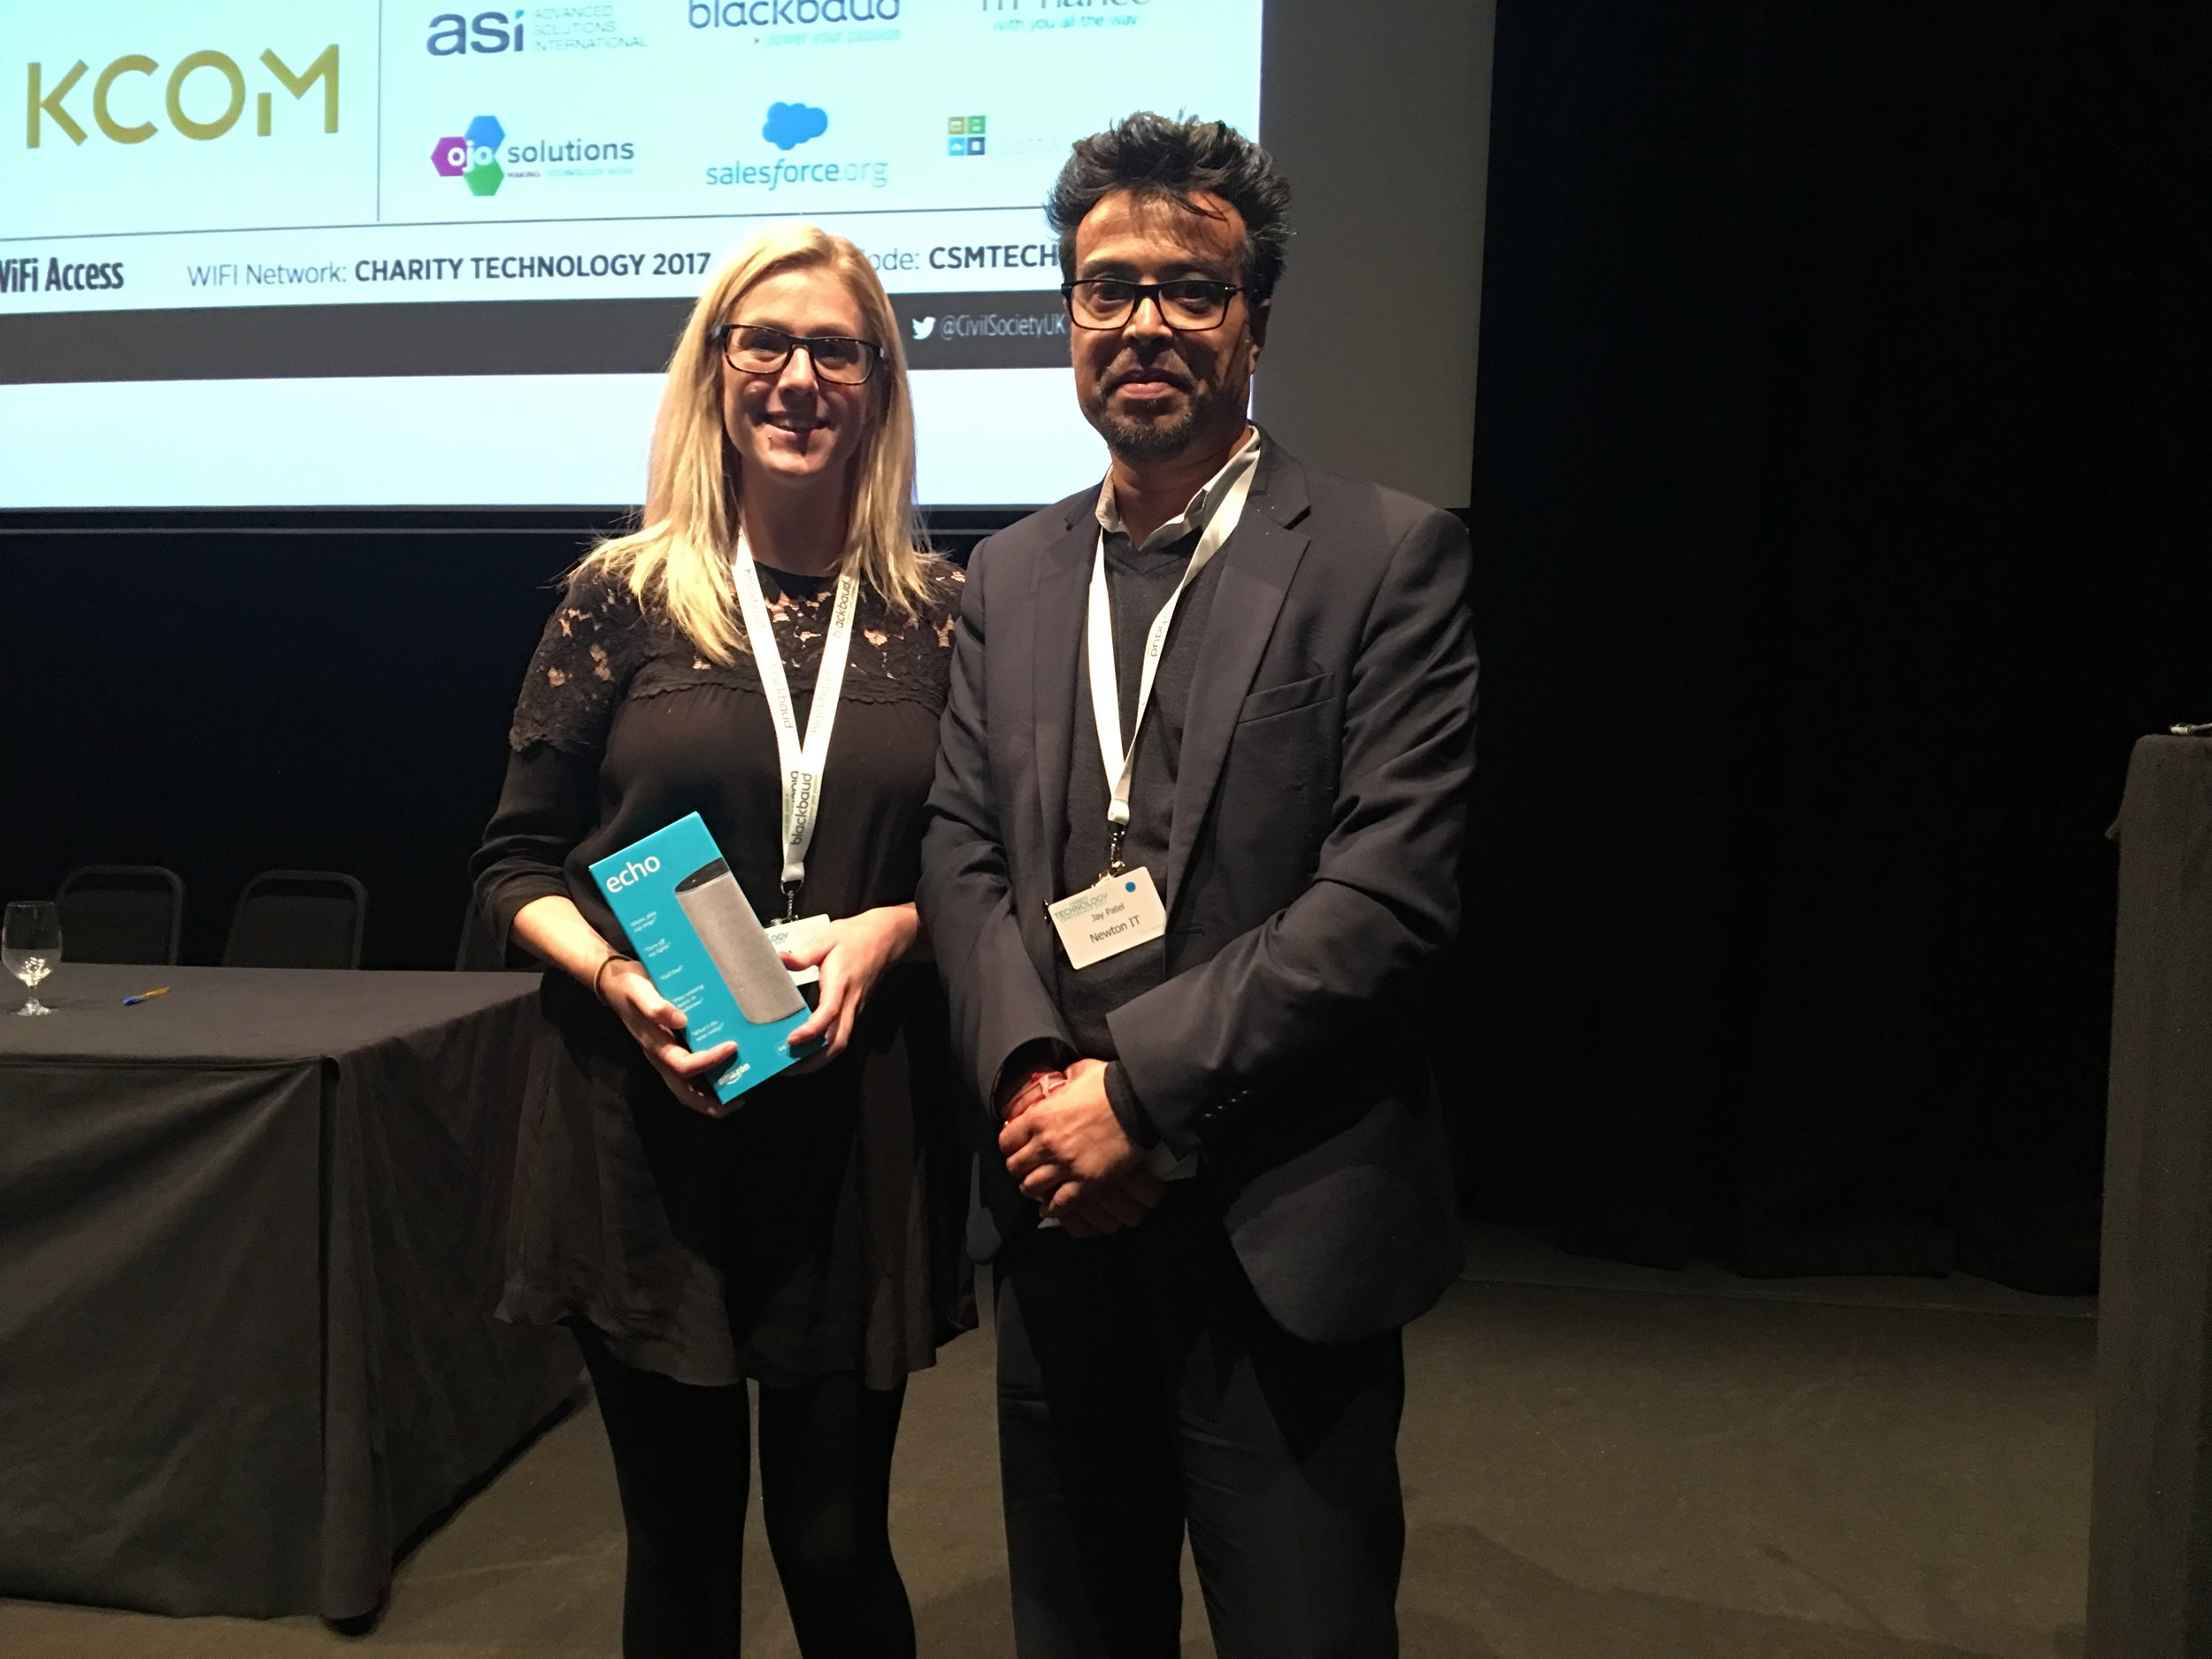 Claire Edwards - Winner of the Amazon Alexa Echo at the Charity Technology Conference 2017. Prize awarded by Jay Patel, Managing Director of Newton IT Solutions.